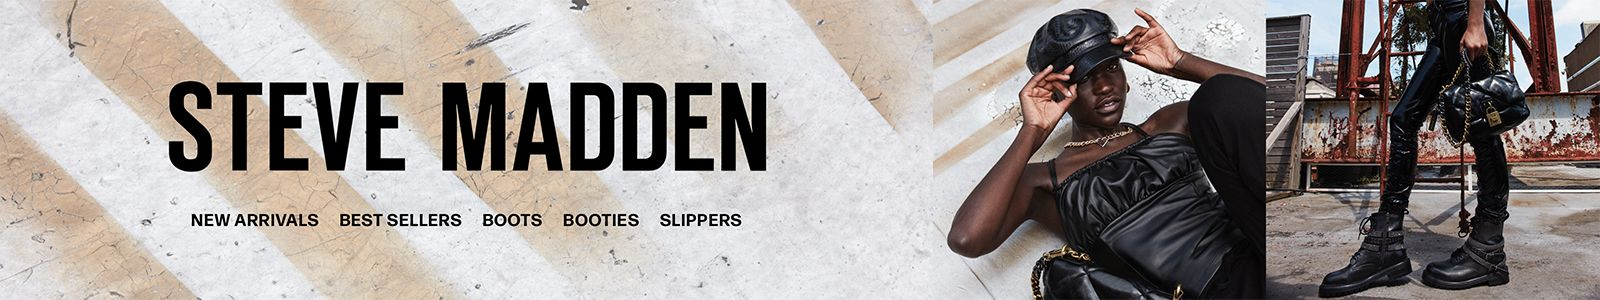 Steve Madden, New Arrivals, Best Sellers, Boots, Booties, Slippers